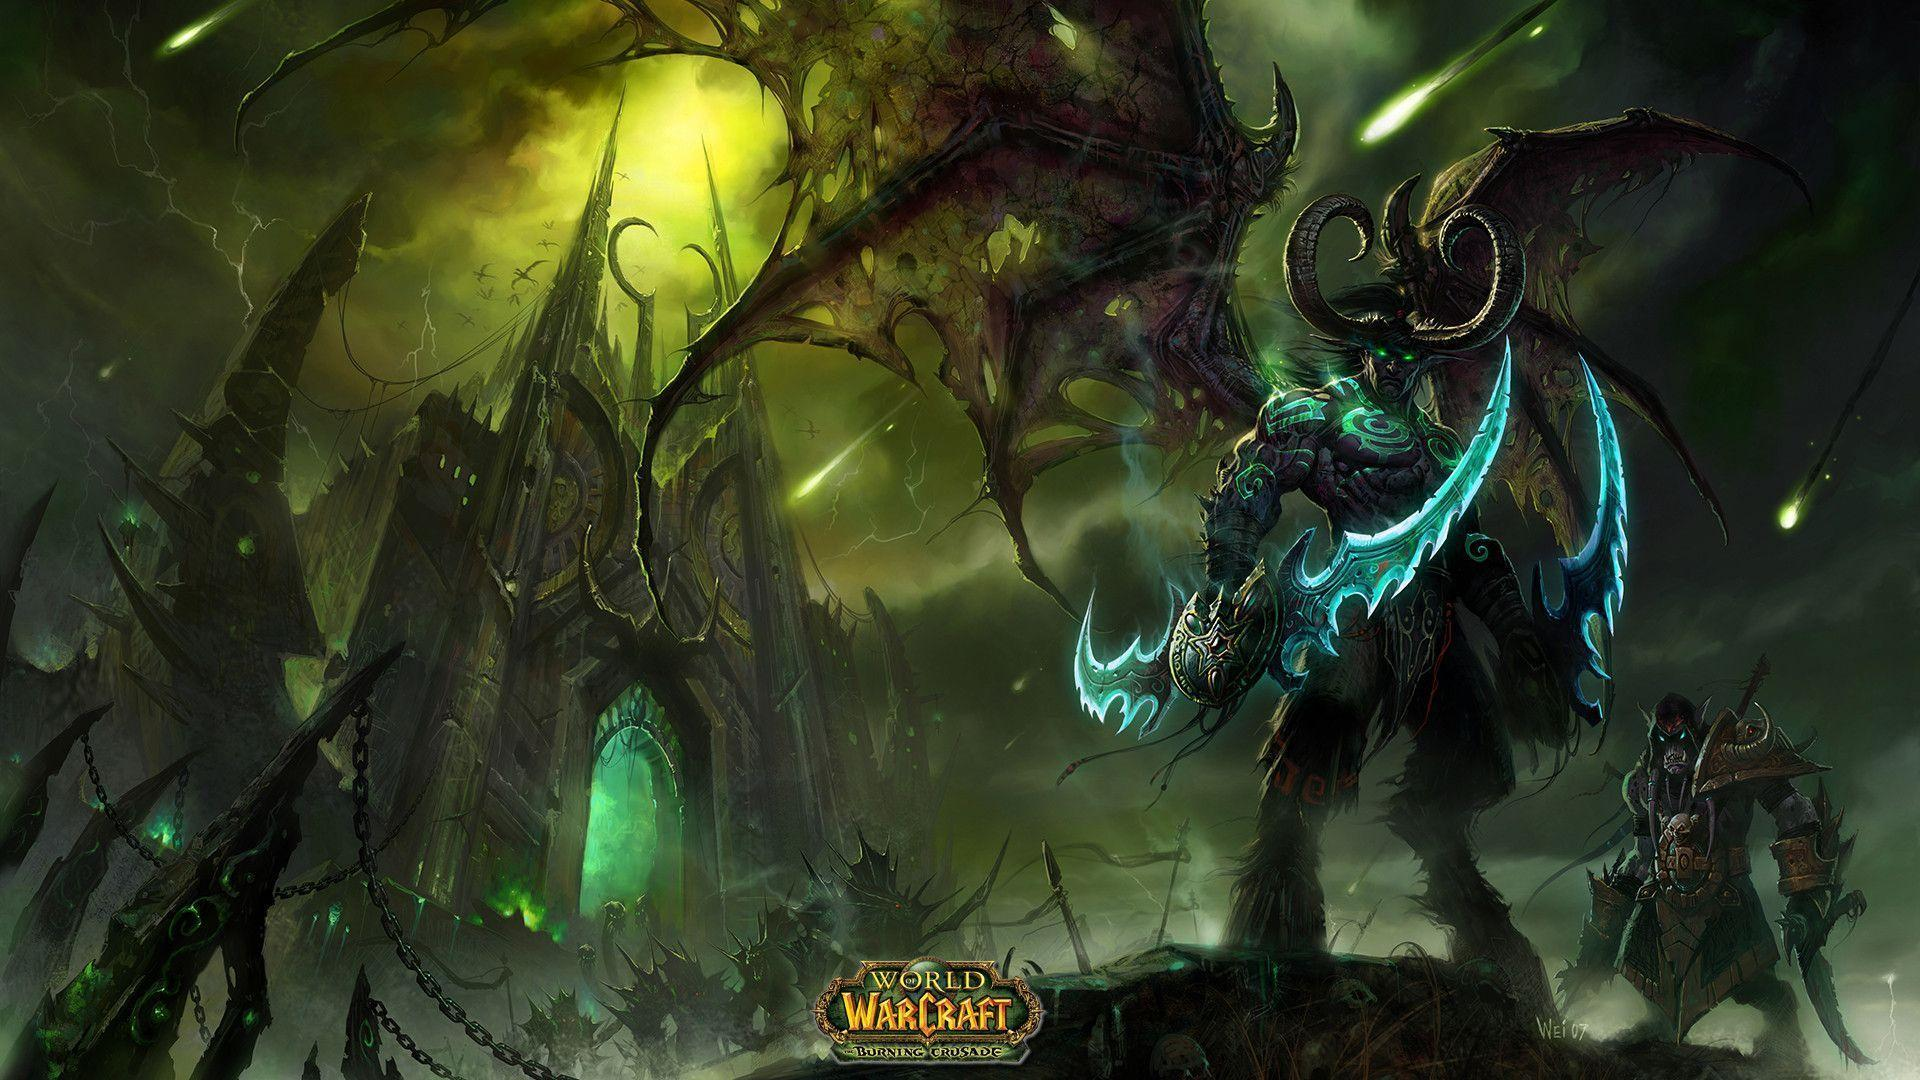 World Of Warcraft Wallpapers | HD Wallpapers Early